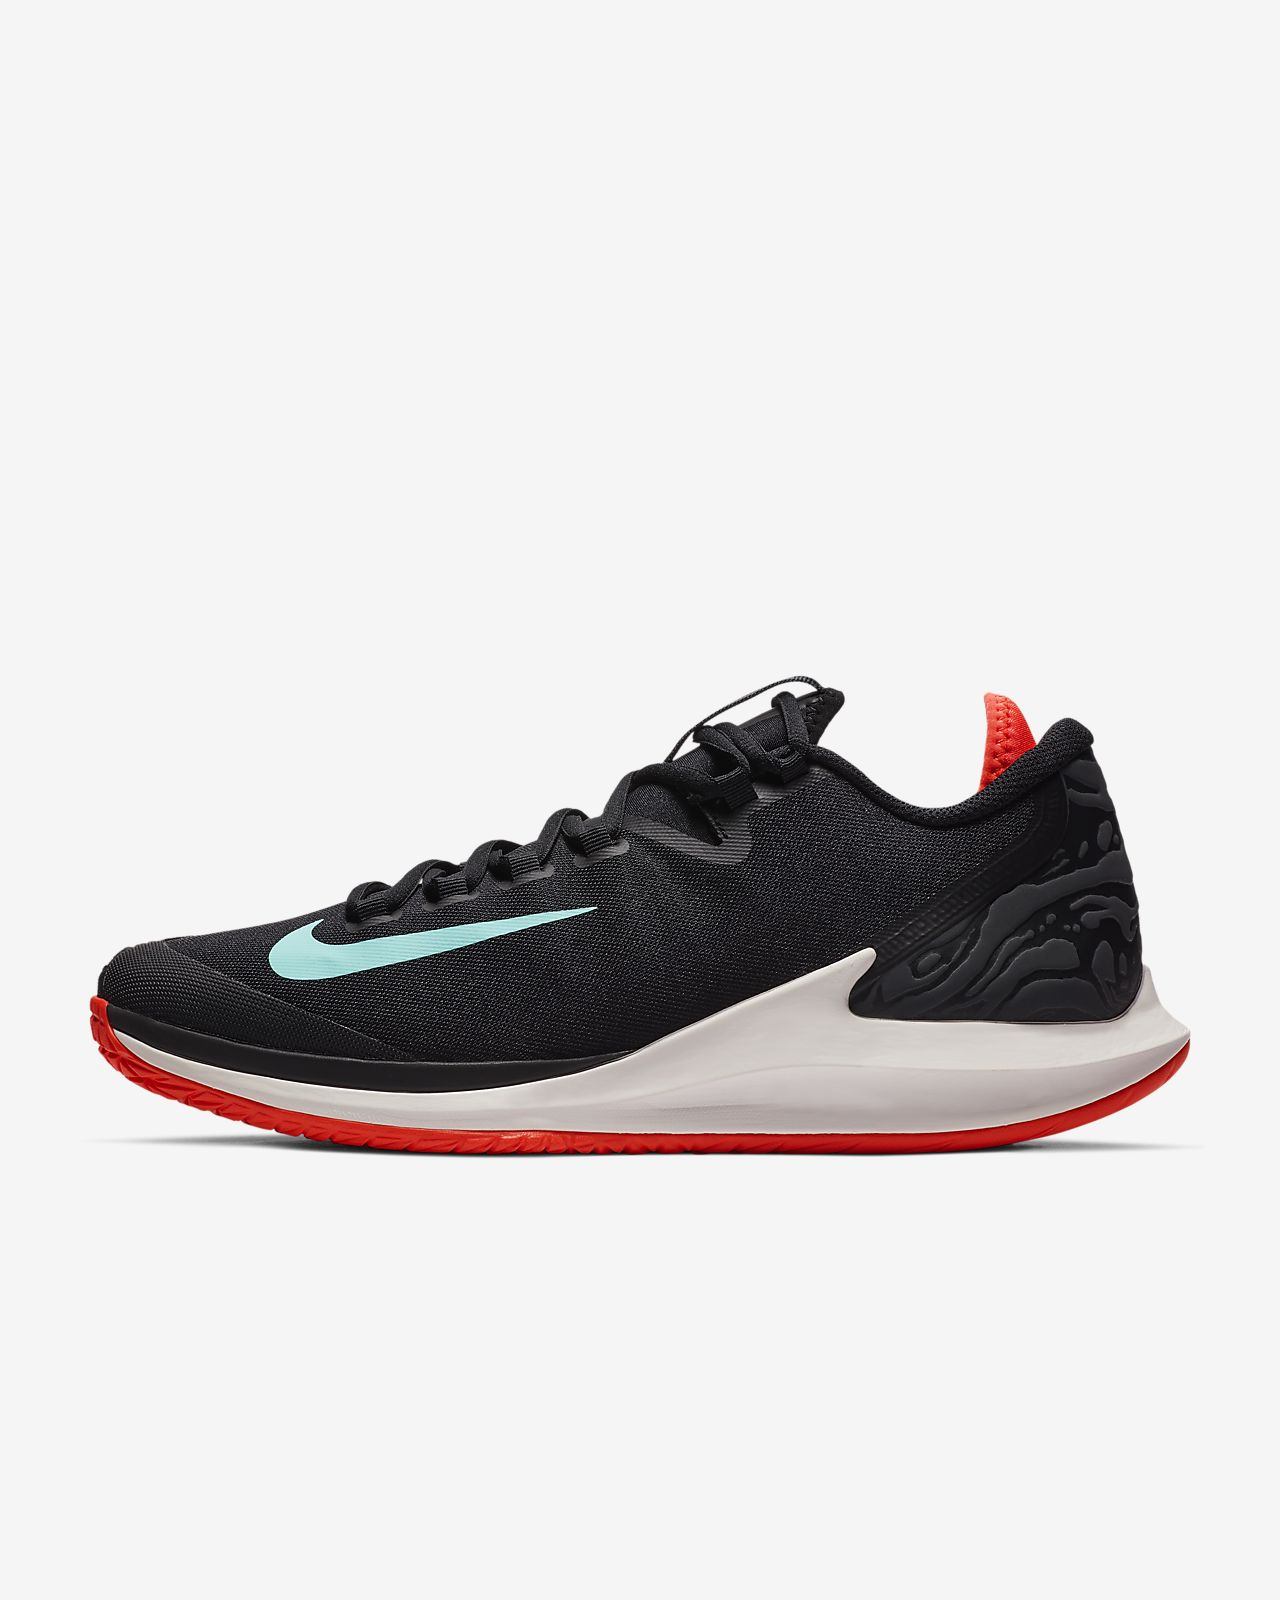 99be9d169db NikeCourt Air Zoom Zero Men s Tennis Shoe. Nike.com